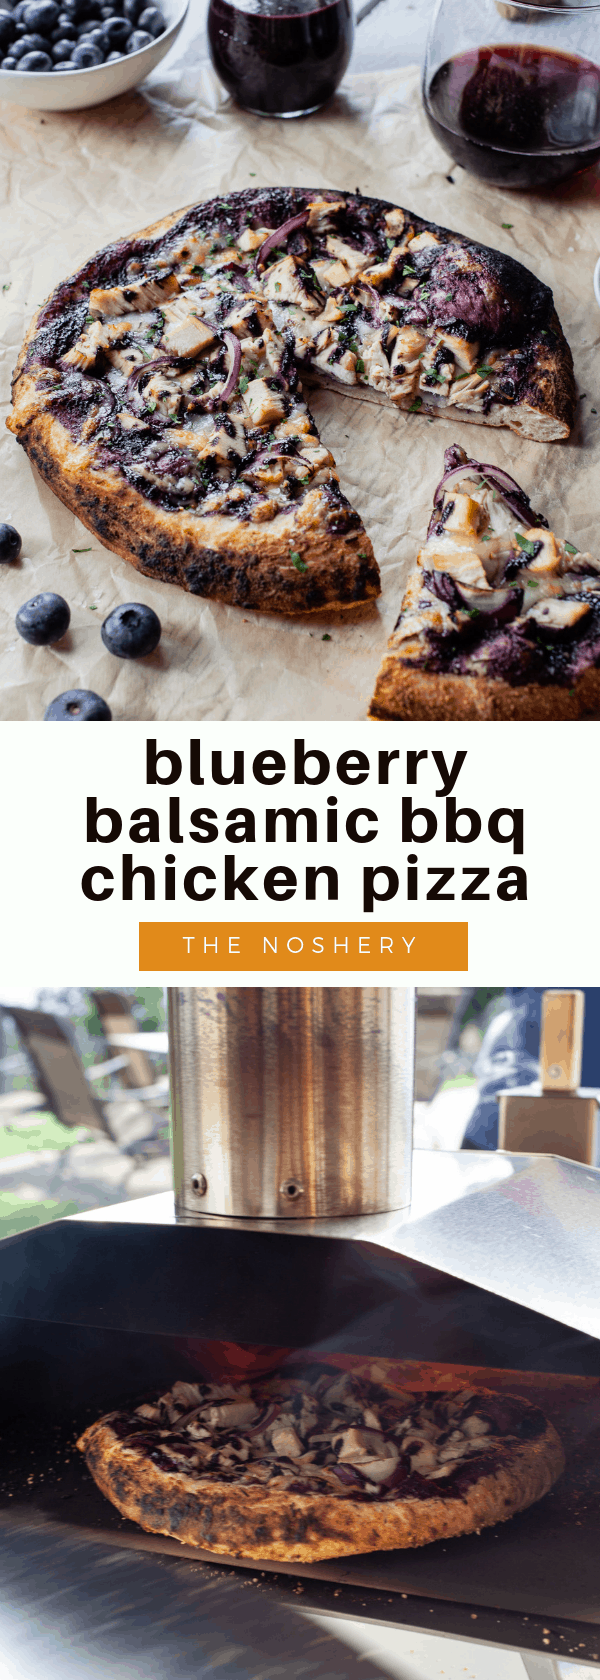 Blueberry Balsamic BBQ Chicken Pizza | A twist on the favorite bbq chicken pizza. The bbq sauce is made with a classic pairing, blueberries and balsamic vinegar. | The Noshery